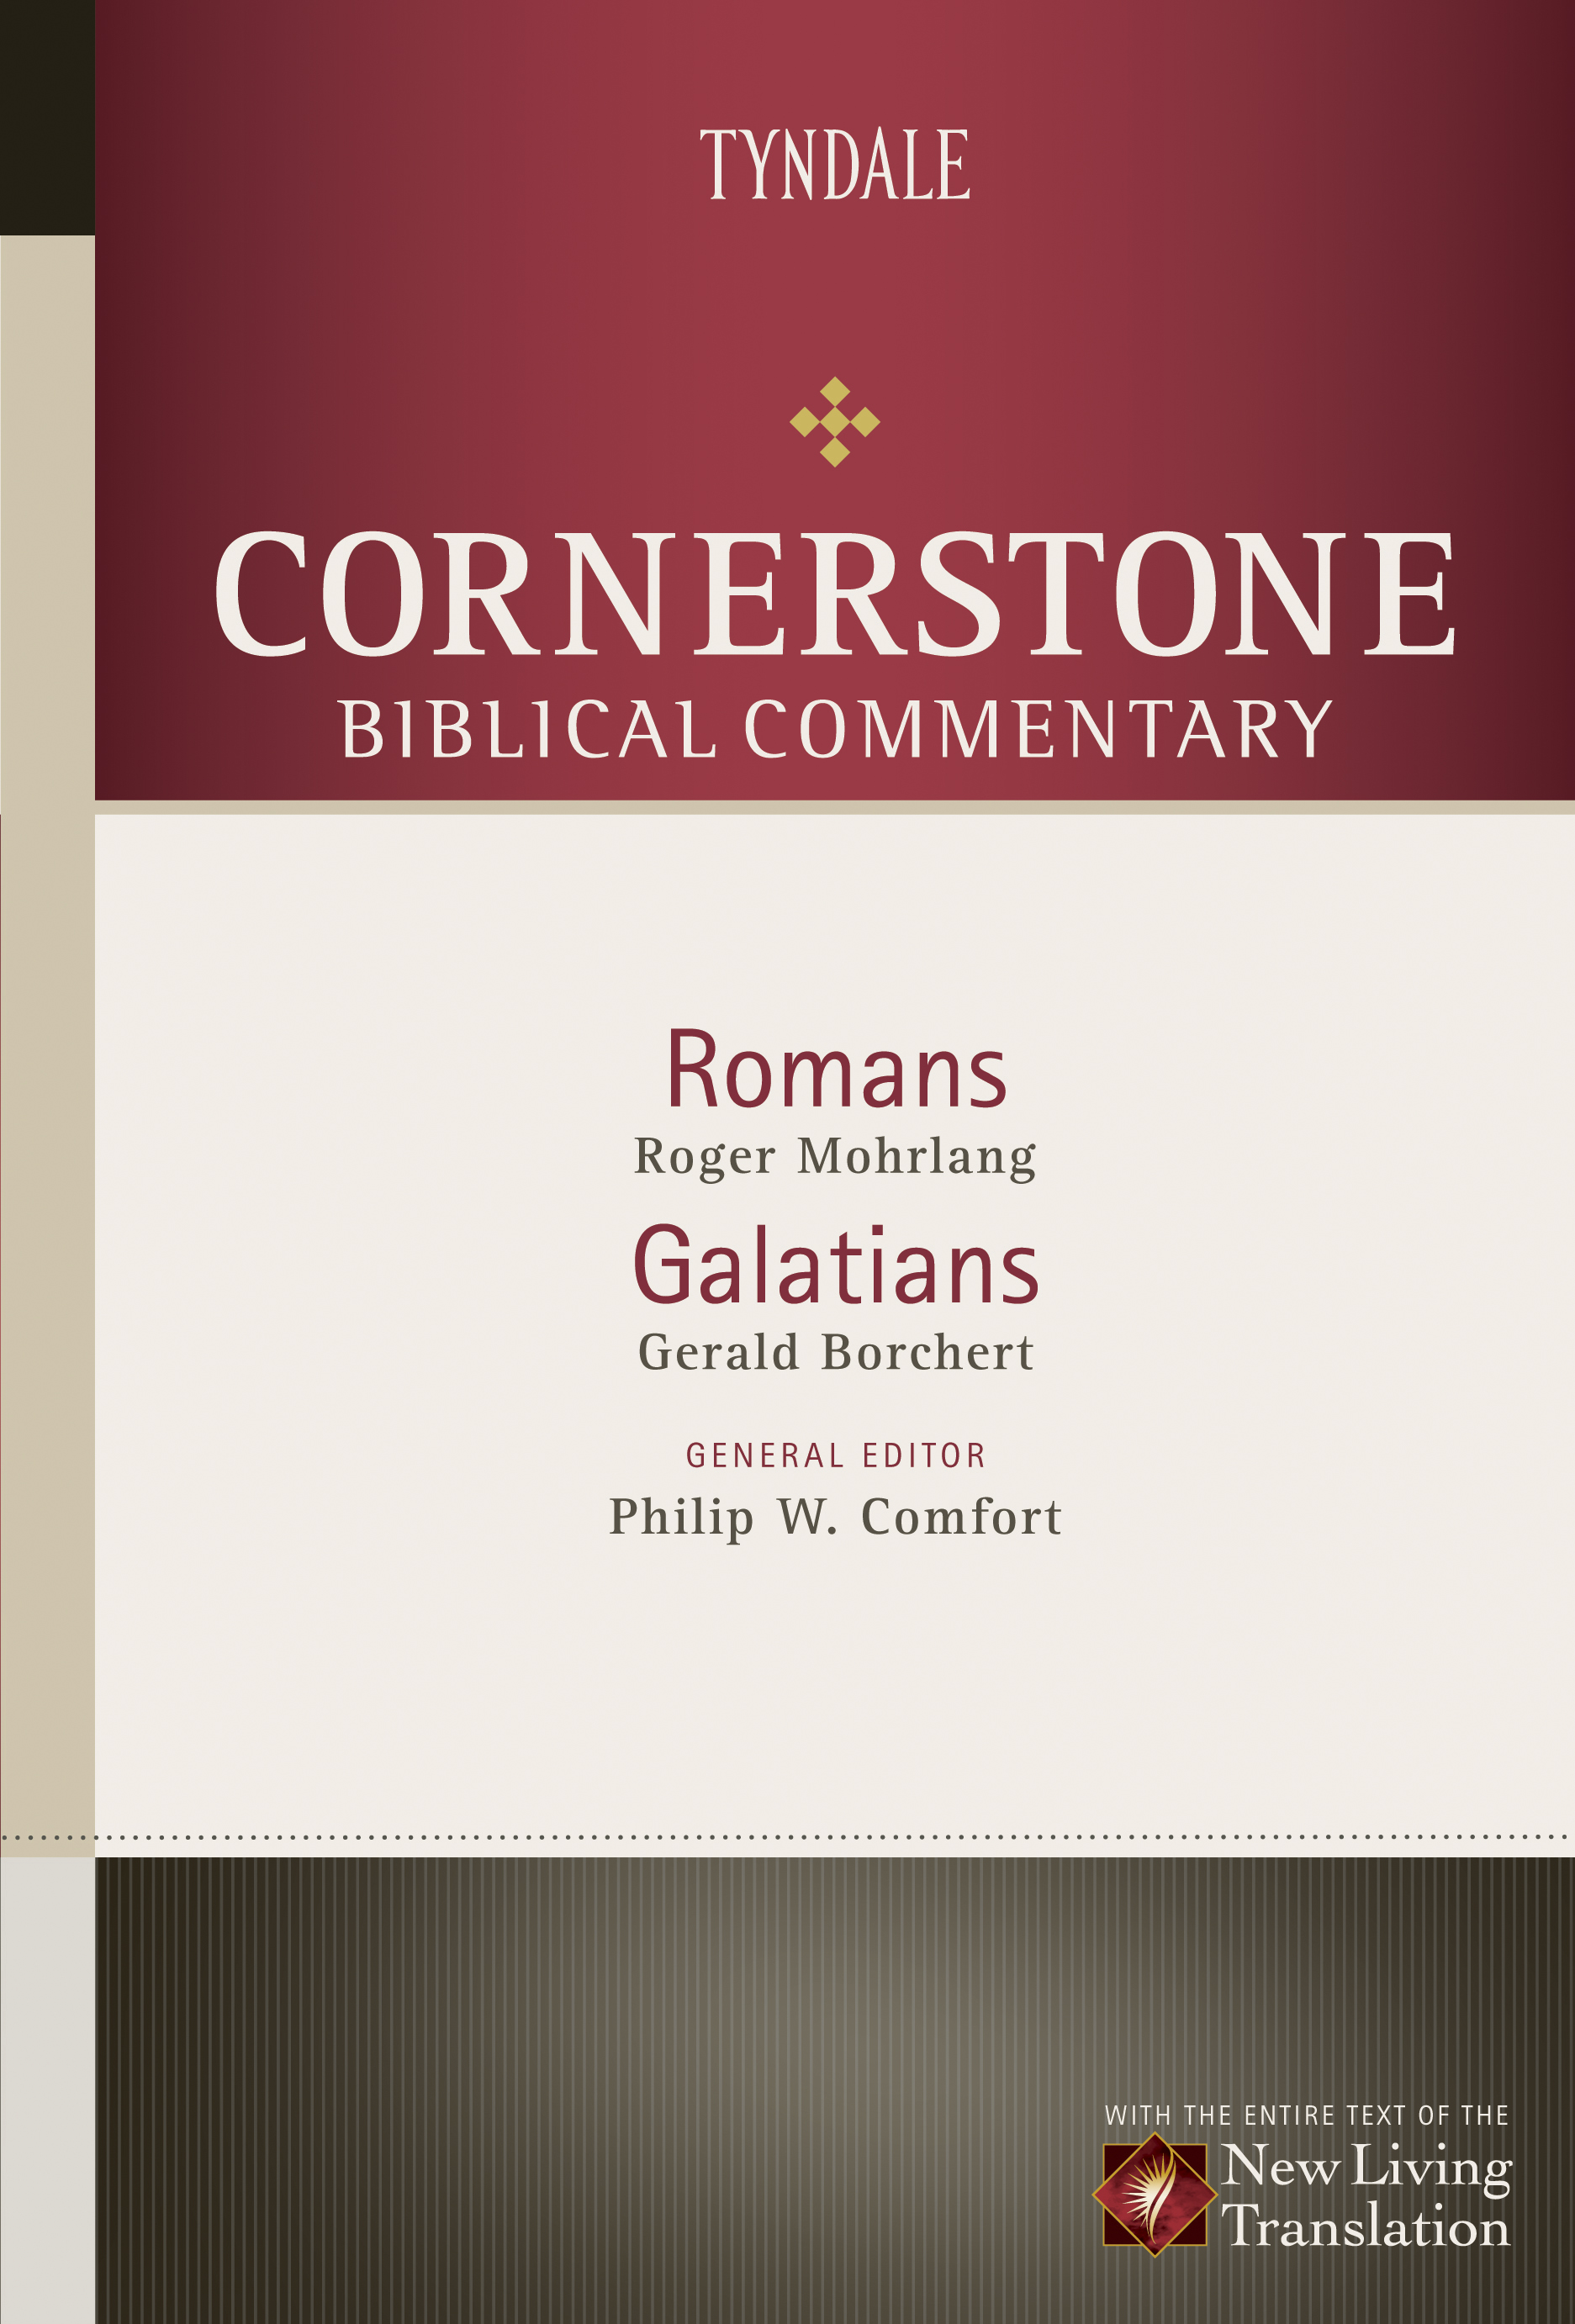 an analysis of psalms genesis and exodus in the bible